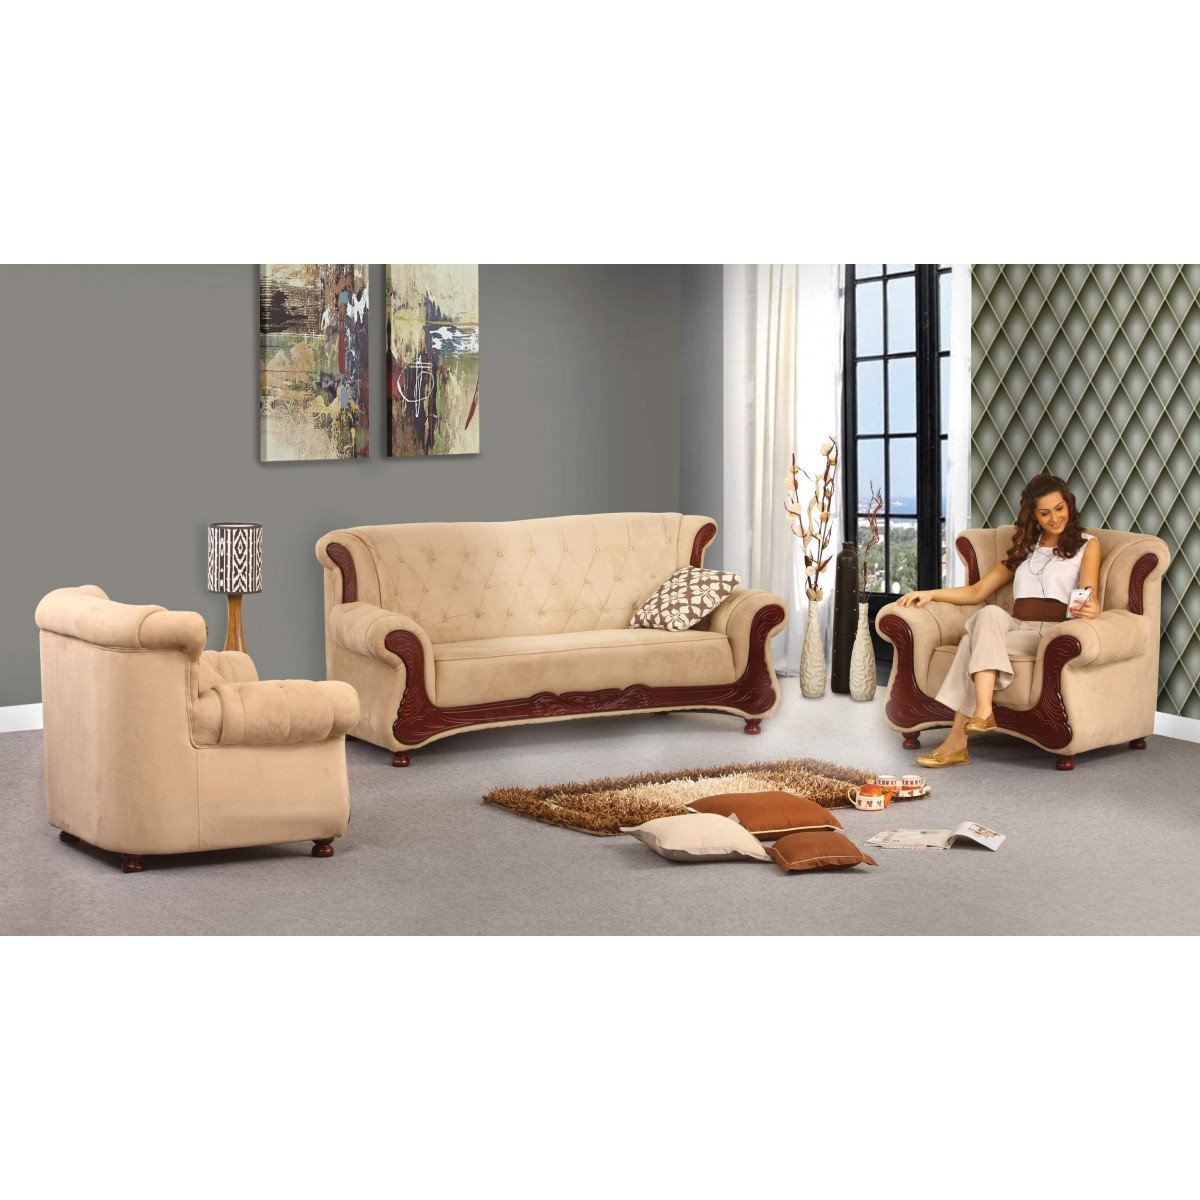 Grace Sofa | Damro Pertaining To Grace Sofa Chairs (View 2 of 25)